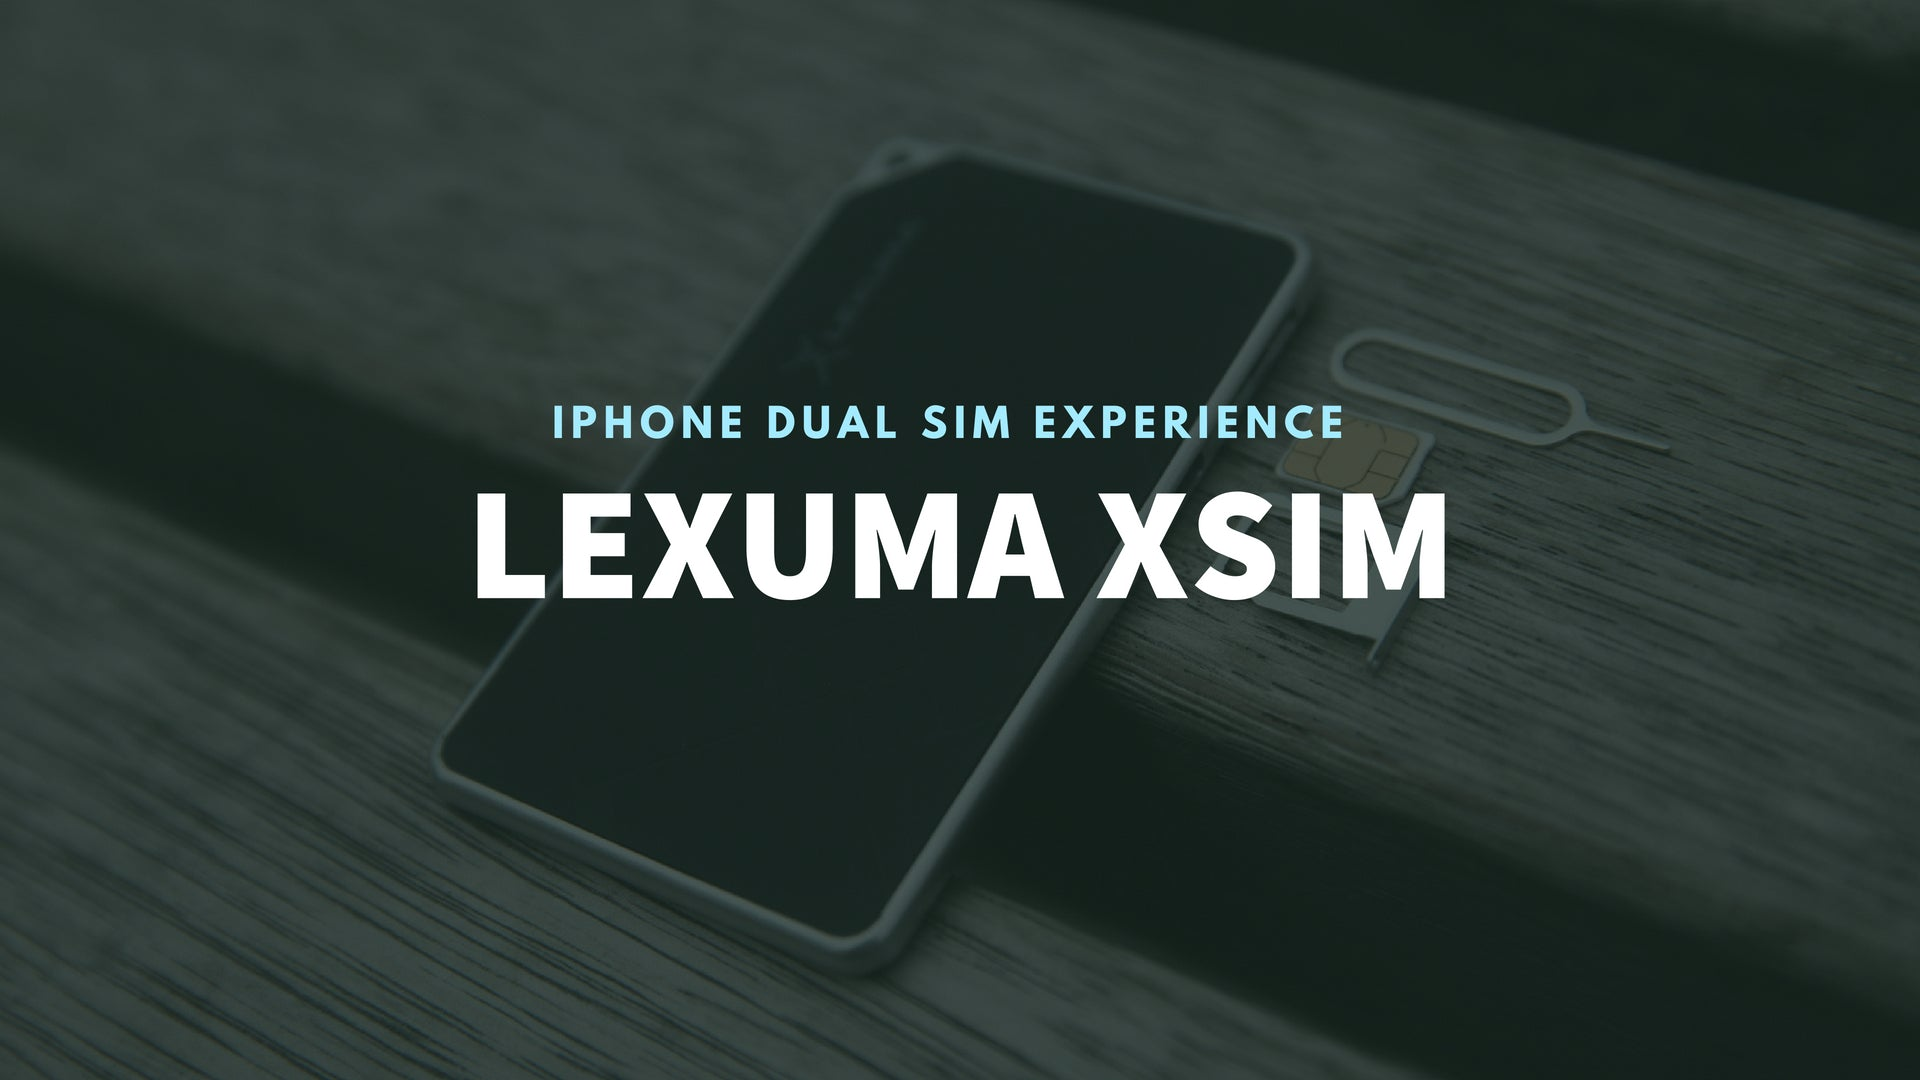 Lexuma XSIM XDS-1220 Portable Wireless Bluetooth iPhone Extension Dual SIM Adapter 2 sim iphone dual sim iphone 5s morecard app bluetooth dual sim adapter android multi sim adaptor dual sim adapter bluetooth android magic sim review dual sim iphone 6 simultaneously dual sim adapter active at the same time iphone 7 dual sim case bluetooth sim adapter for android ikos k1s worldsim duet review piece dual sim simplus app iphone 8 dual sim case dual sim adapter goodtalk s socblue a810 dual sim adapters do they work mokablue review iphone app dual sim iphone dual sim dual active ikos bluetooth dual sim adapter simore e clips review simore iphone 7 dual sim iphone list bluetooth sim adapter bluetooth dual sim adapter android iphone sim adapter iphone 7 dual sim simultaneous bluetooth sim adapter for android dual sim adapter both active ikos dual sim adapter review dual sim box banner review